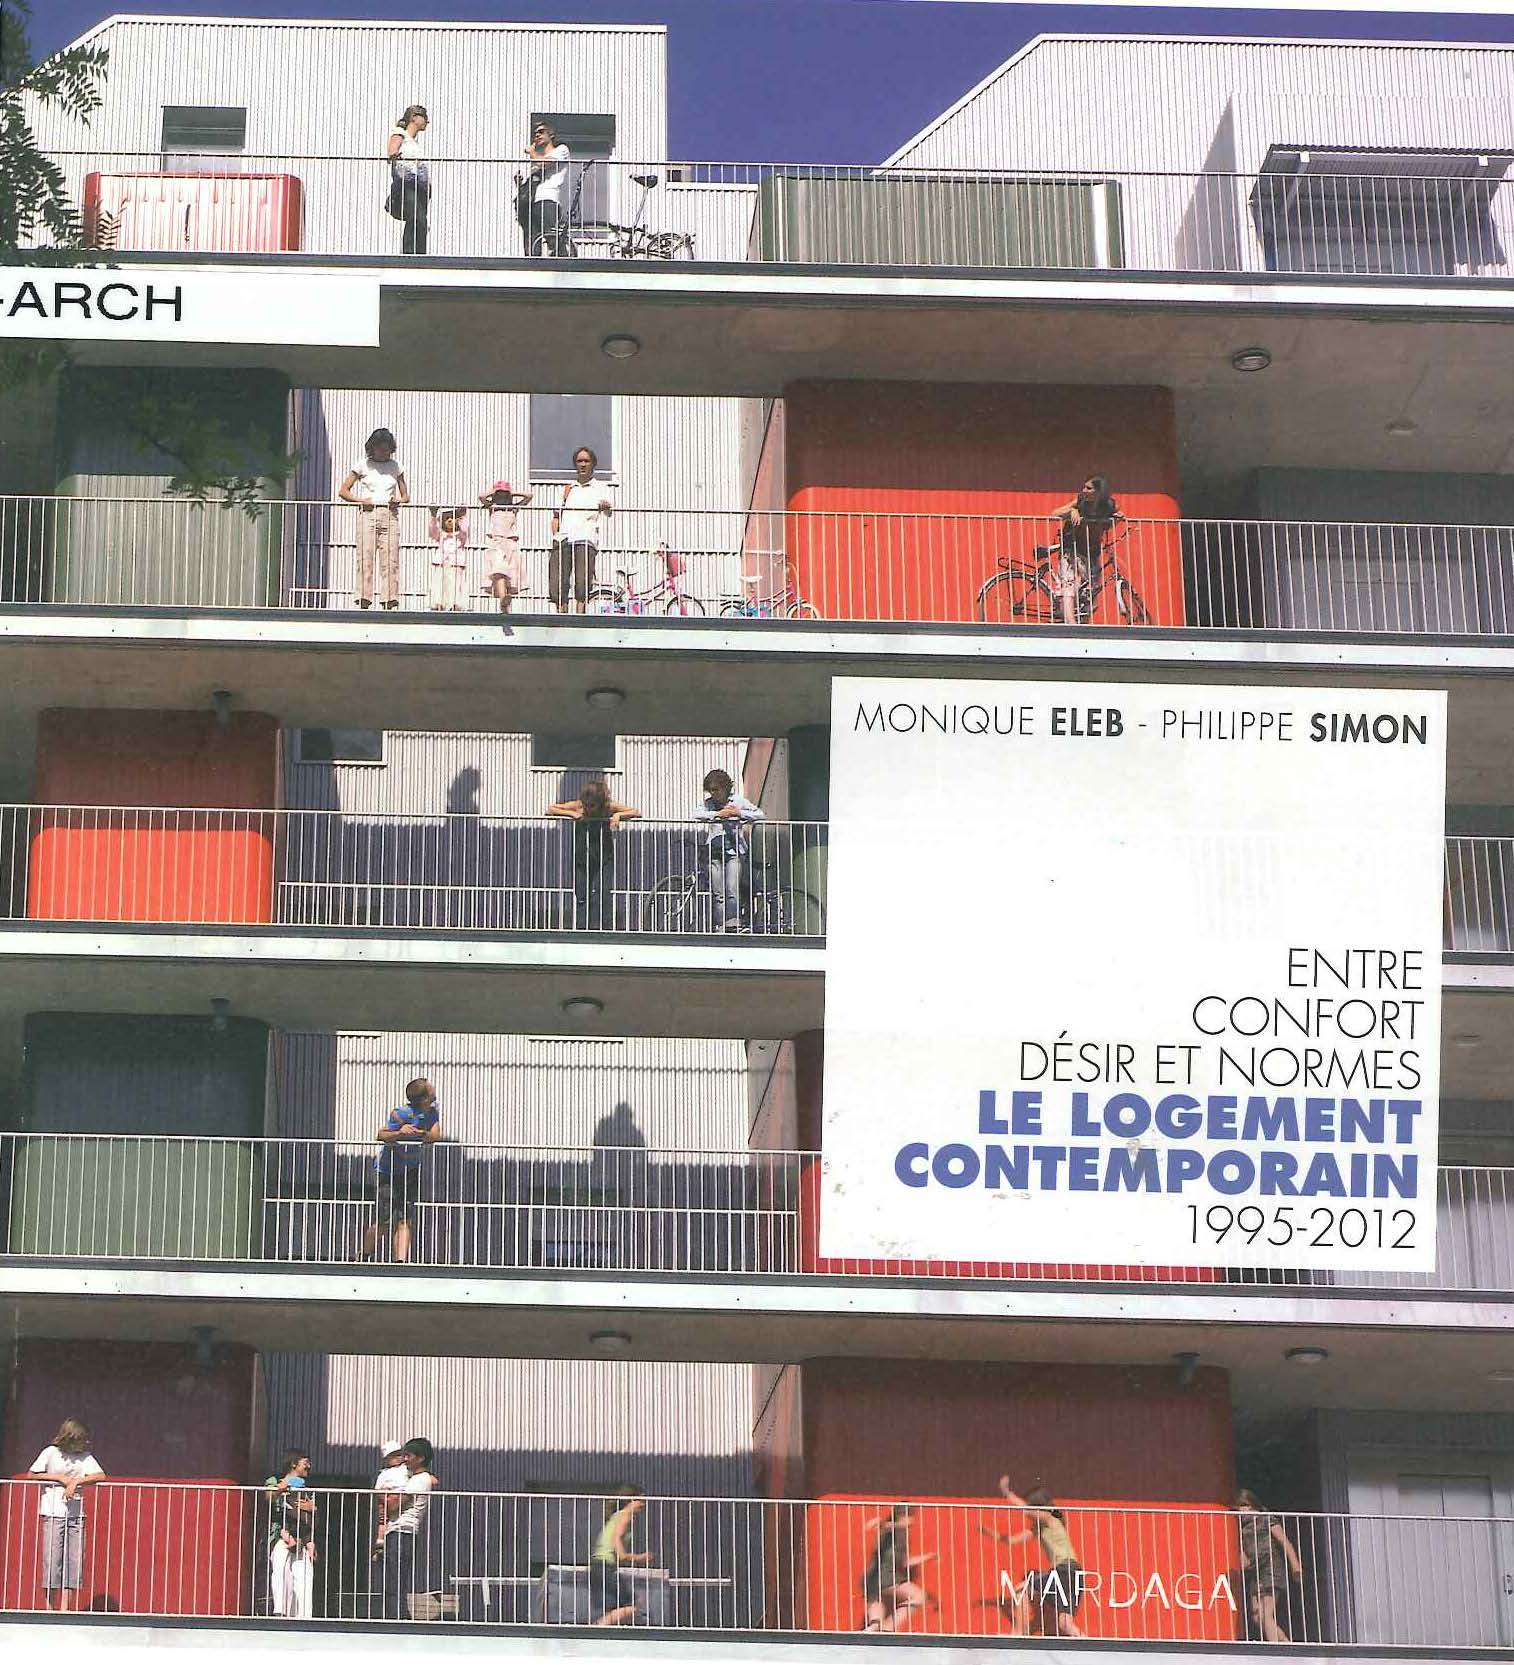 Le logement contemporain 1995-2012